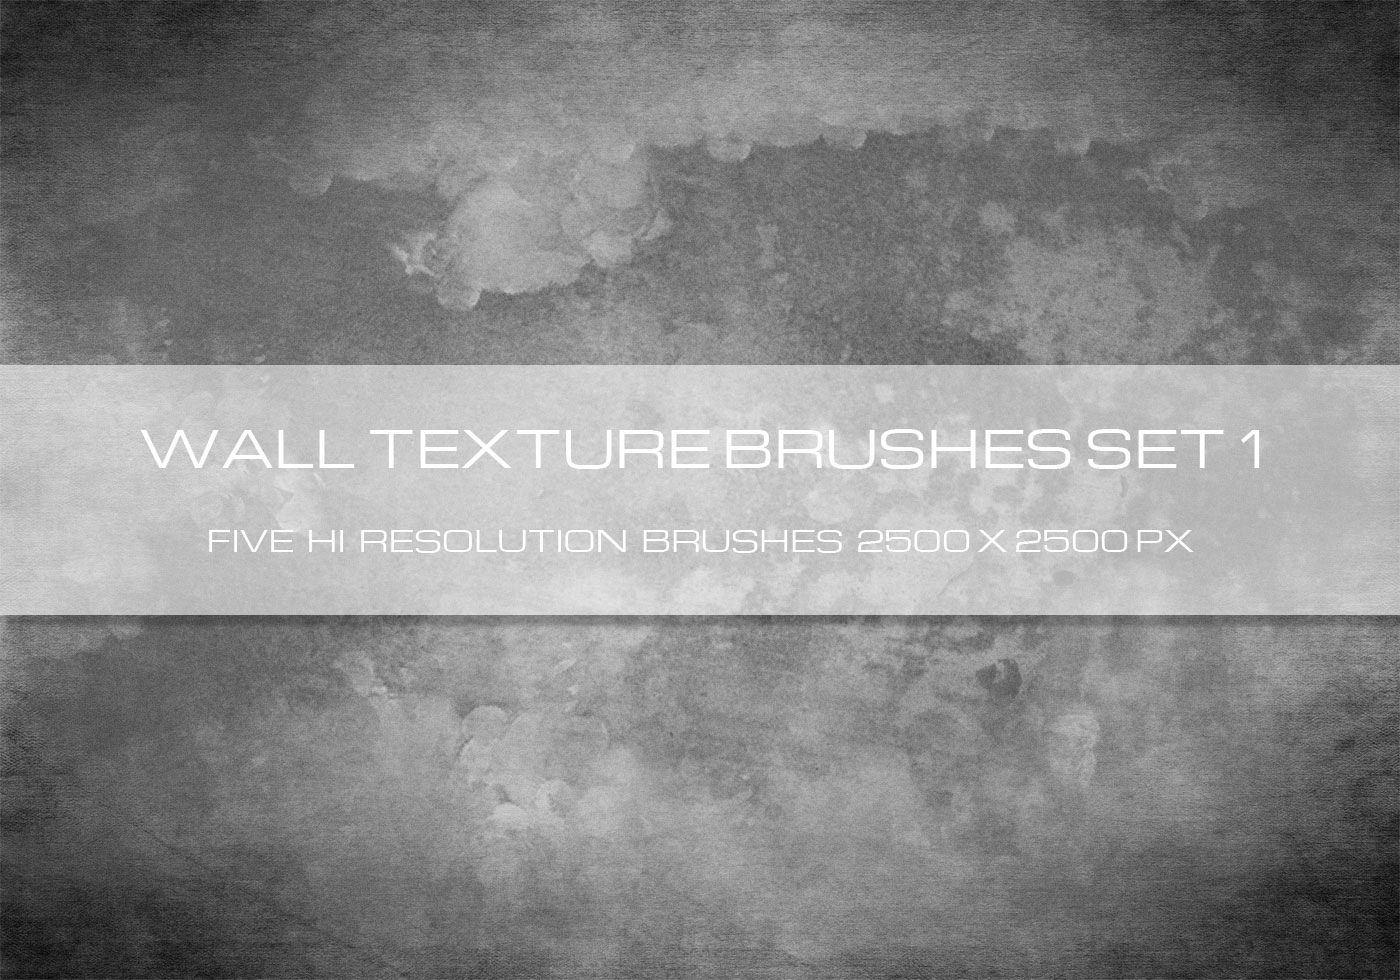 The Wall Texture Brushes Vol 1 - Free Photoshop Brushes at Brusheezy!